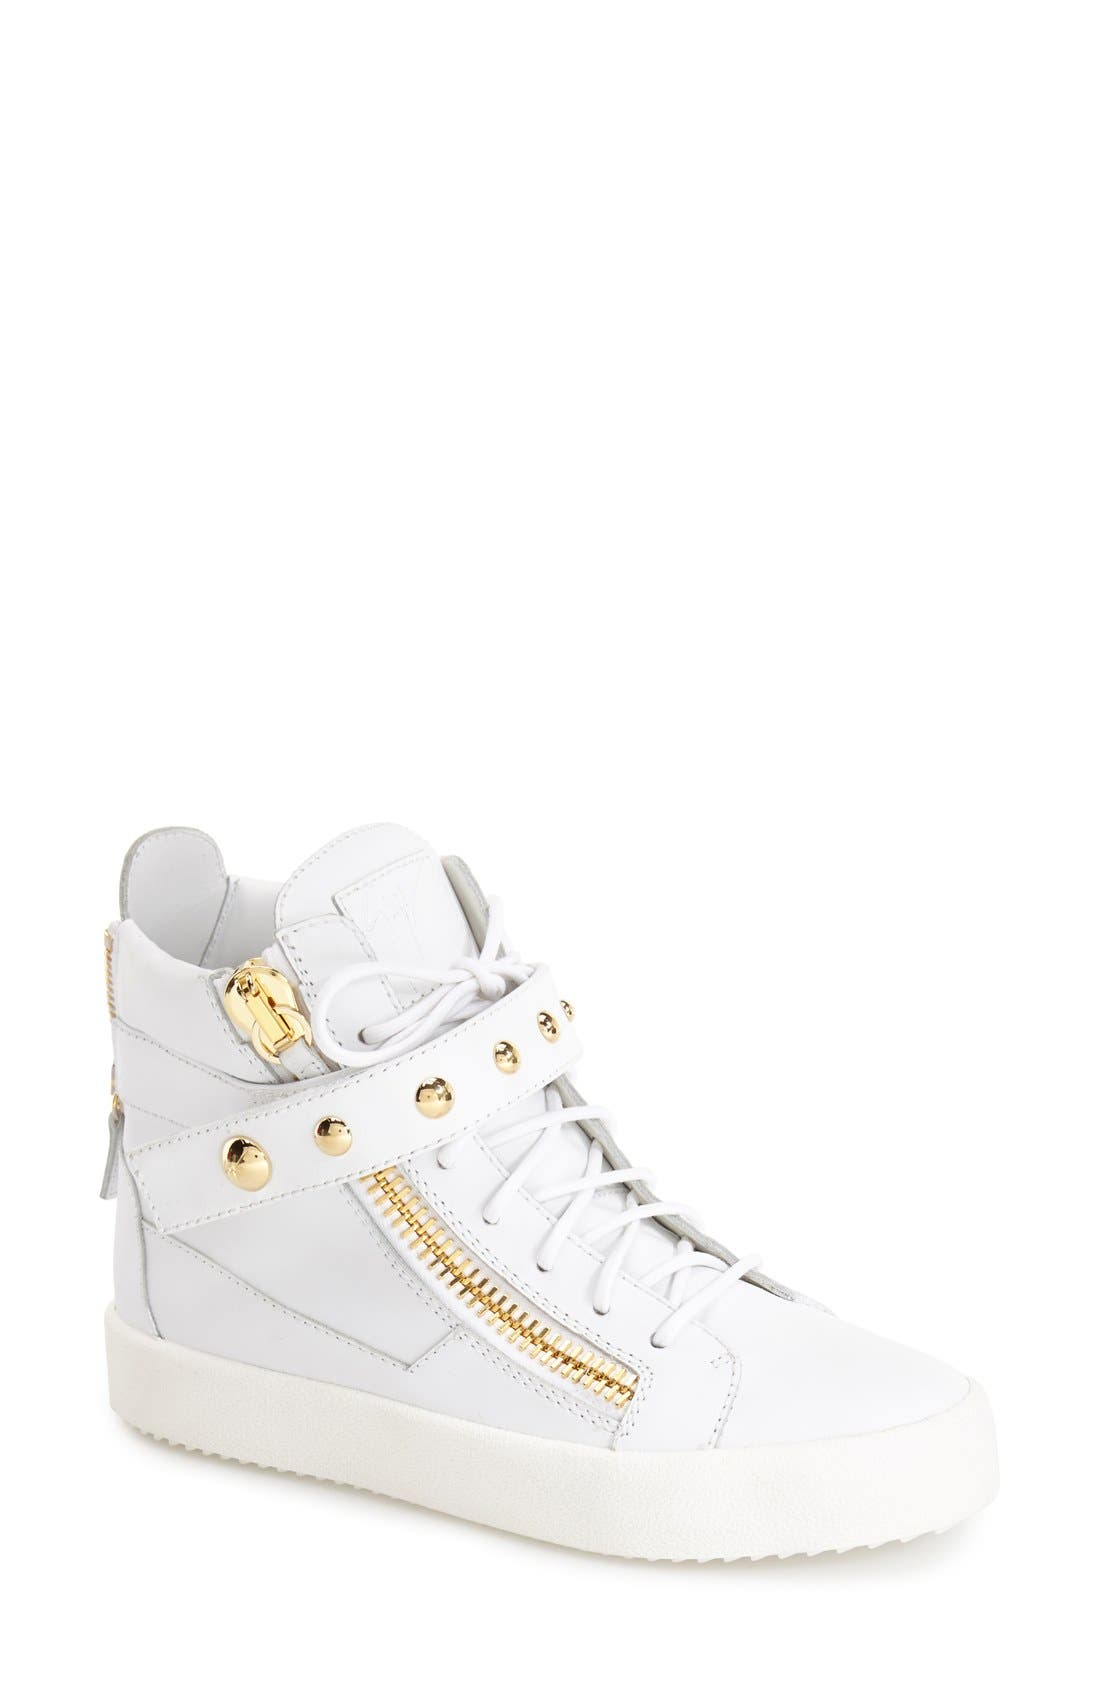 Alternate Image 1 Selected - Giuseppe Zanotti 'May London' High Top Sneaker (Women)